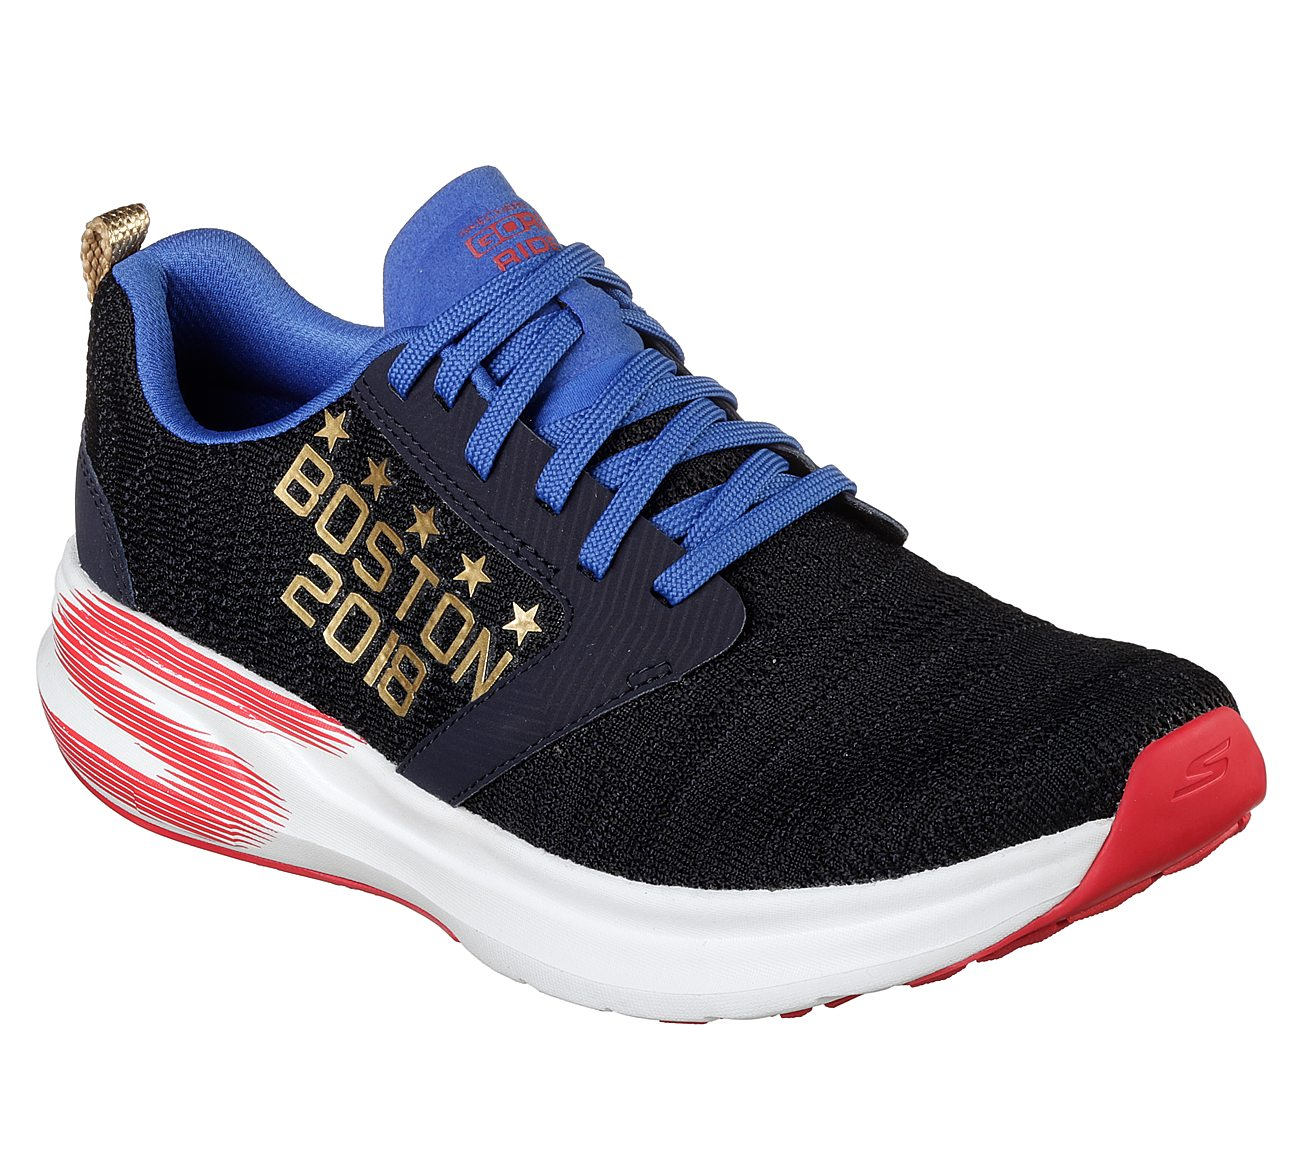 87e6d01afb Buy SKECHERS Skechers GOrun Ride 7 - Boston 2018 Skechers ...